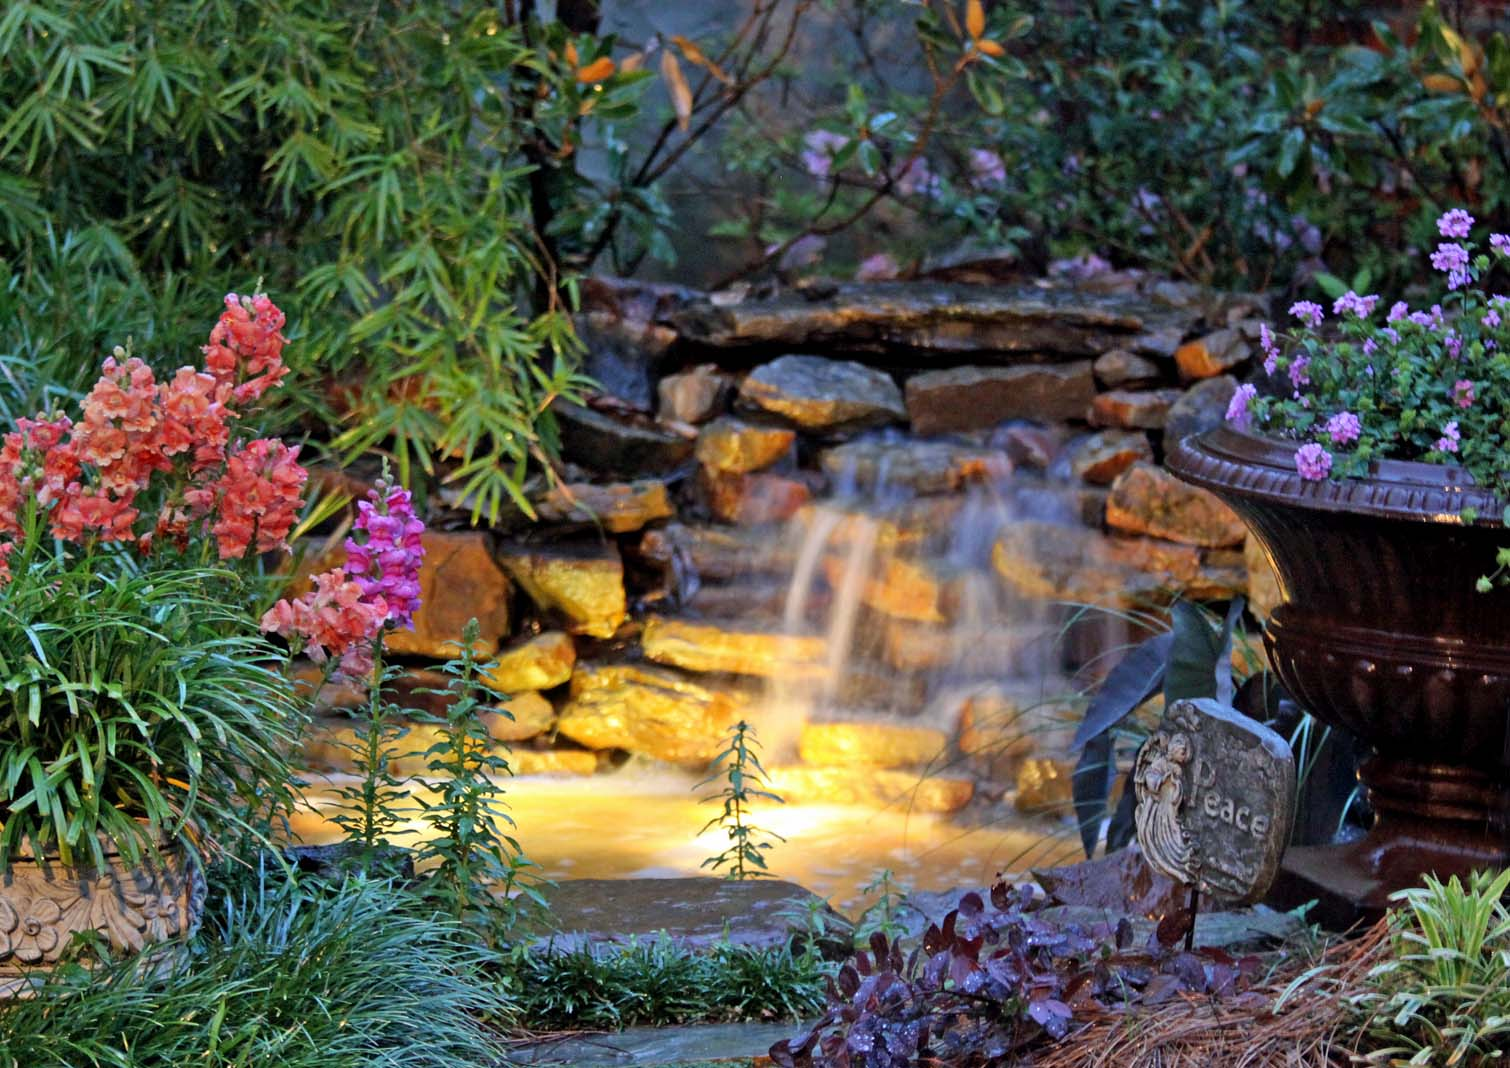 Twilight In Koi Pond >> Southern Lagniappe: March 2012